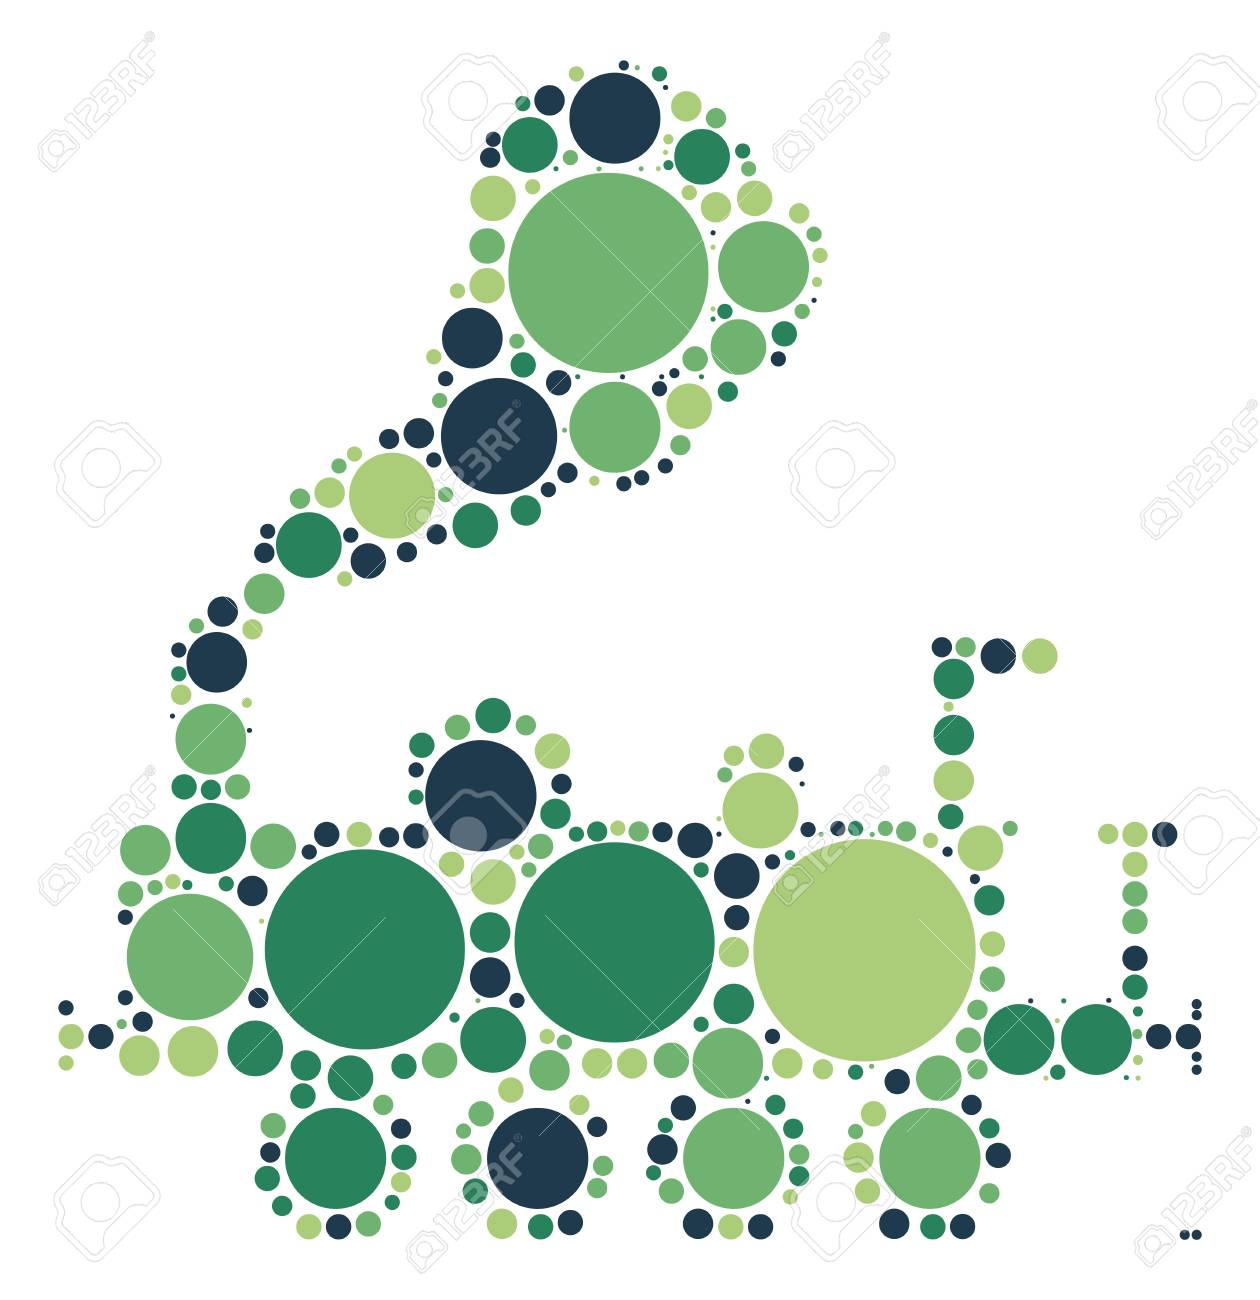 Train Shape Design By Color Point Royalty Free Cliparts, Vectors ...